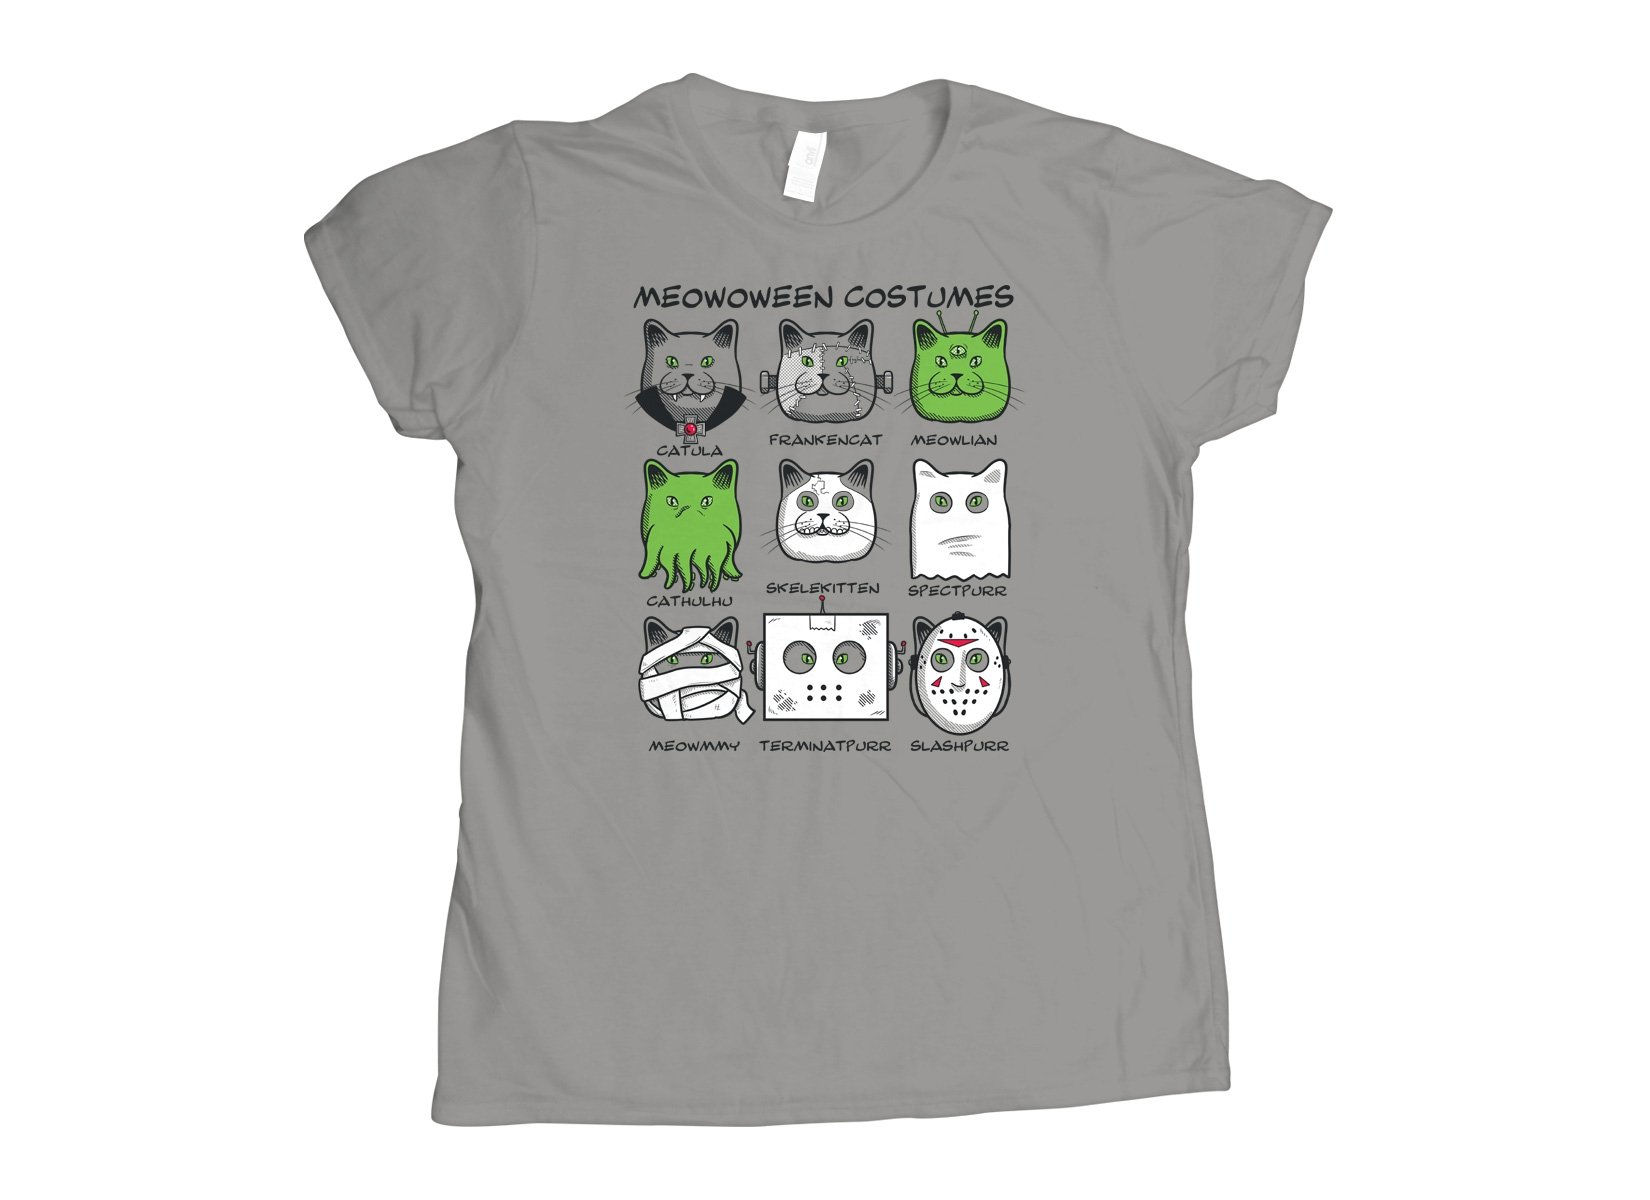 Meowoween Costumes on Womens T-Shirt